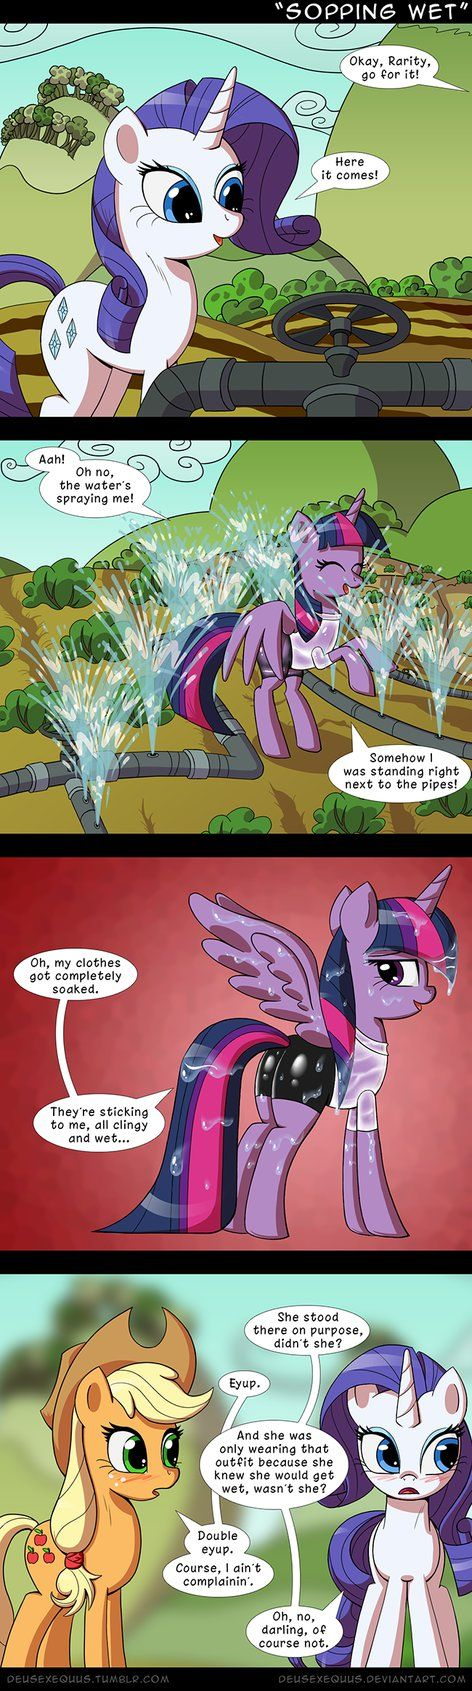 My Little Pony Flurry Heart Ausmalbilder : 2133 Best Evan S Board Images On Pinterest Mlp Comics Ponies And